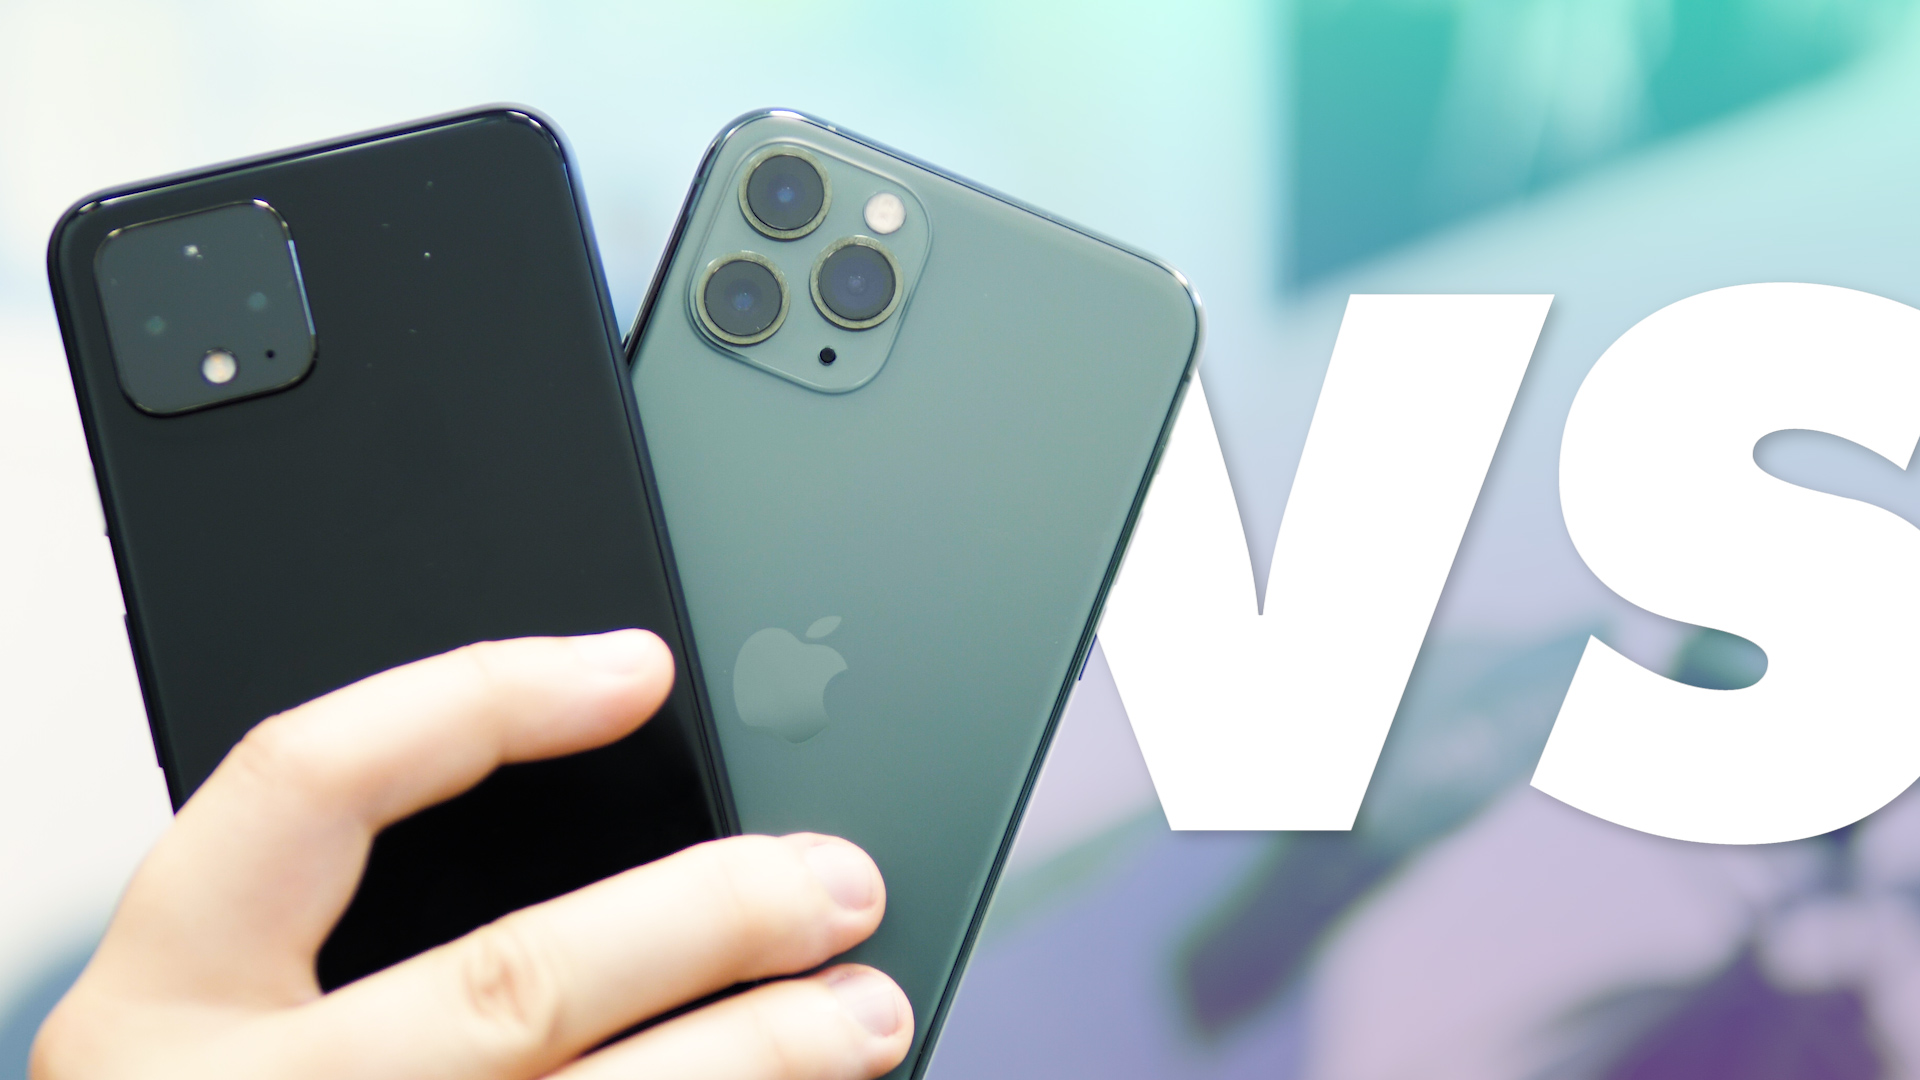 Pixel 4 vs iPhone 11 Pro : QUI EST LE PLUS FORT ? (COMPARATIF)